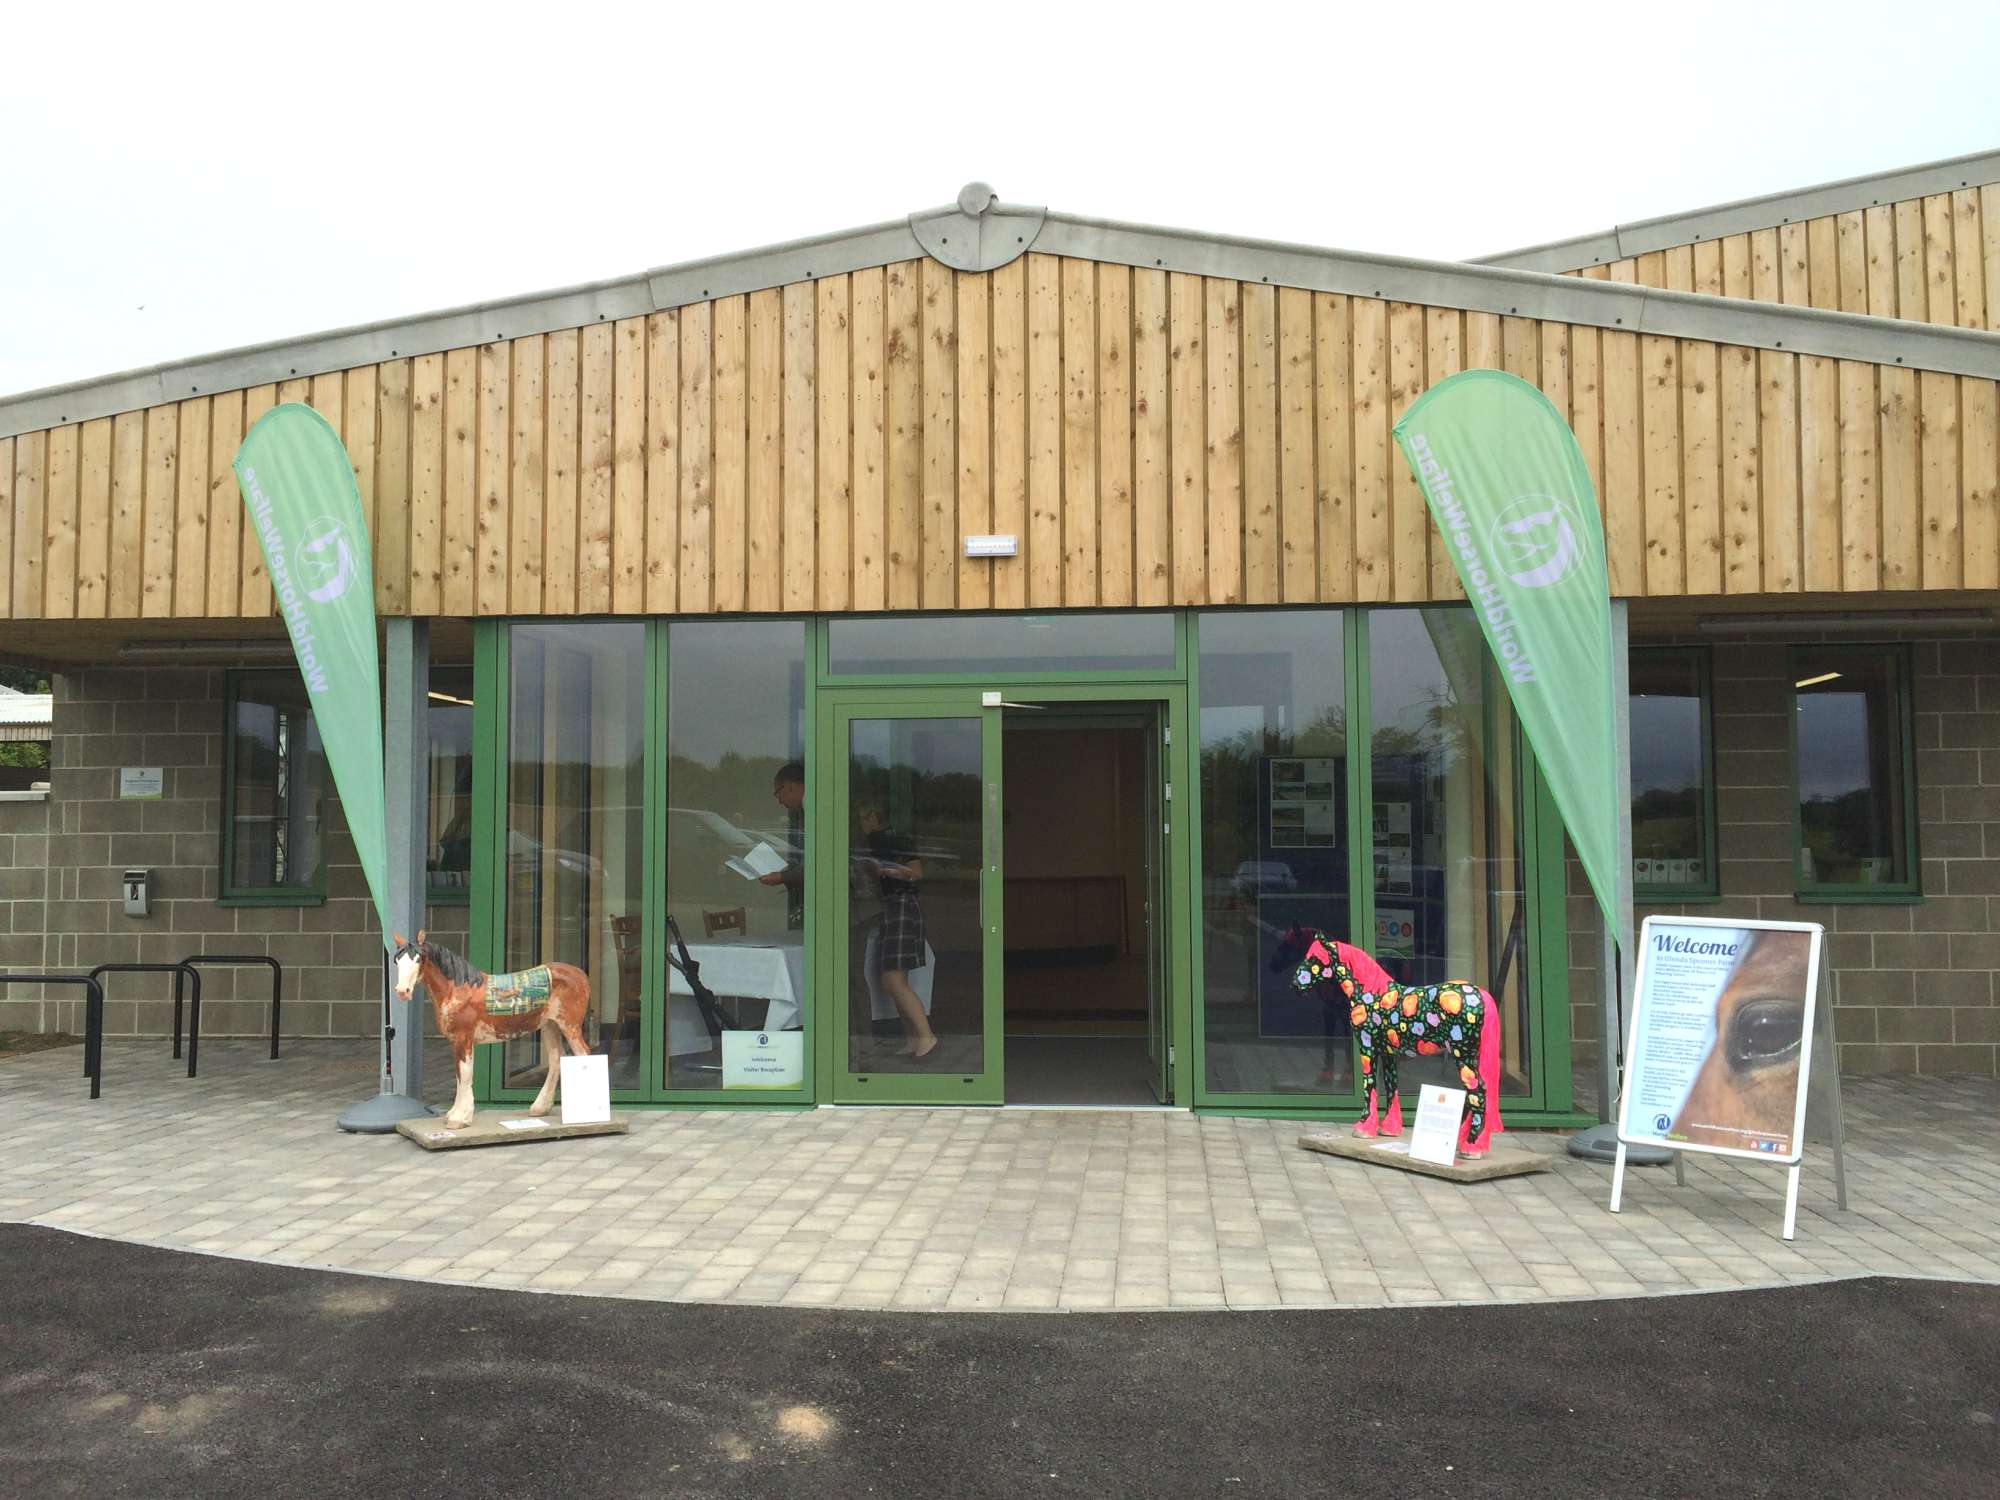 Entrance to the new visitor centre